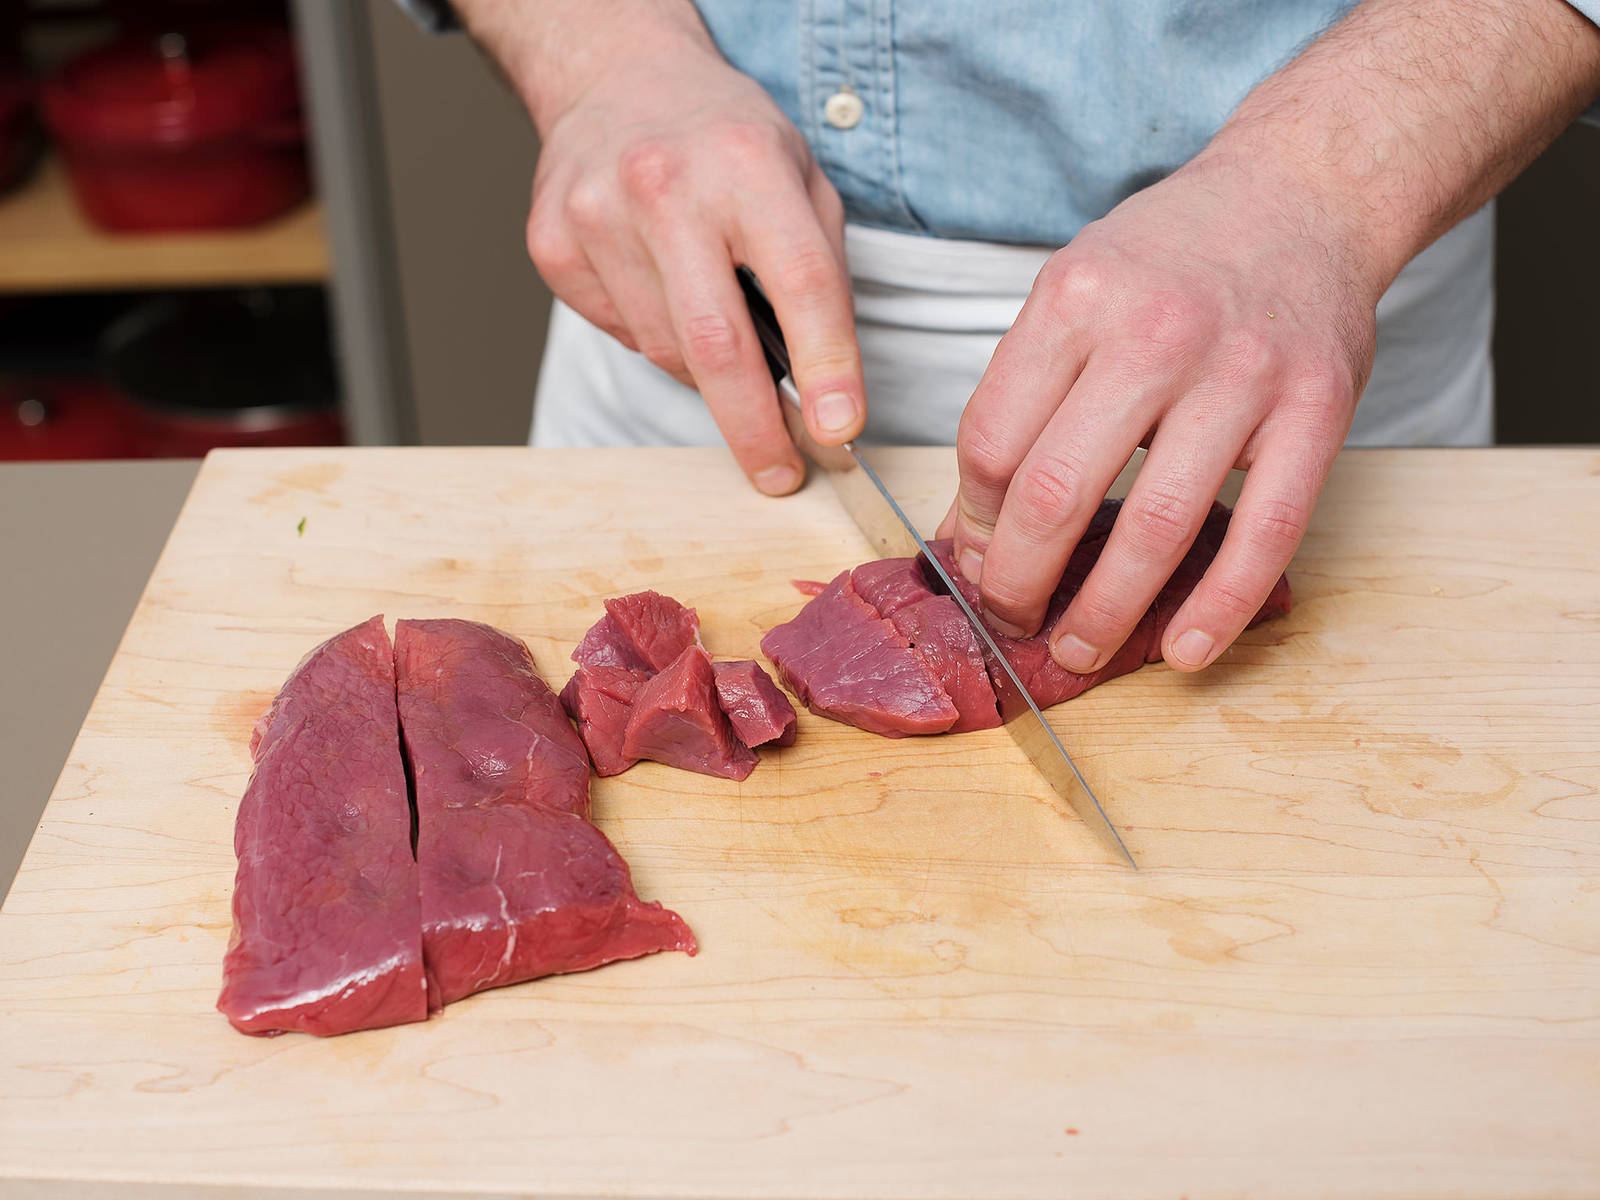 Cut chicken breast and beef into bite-sized pieces.